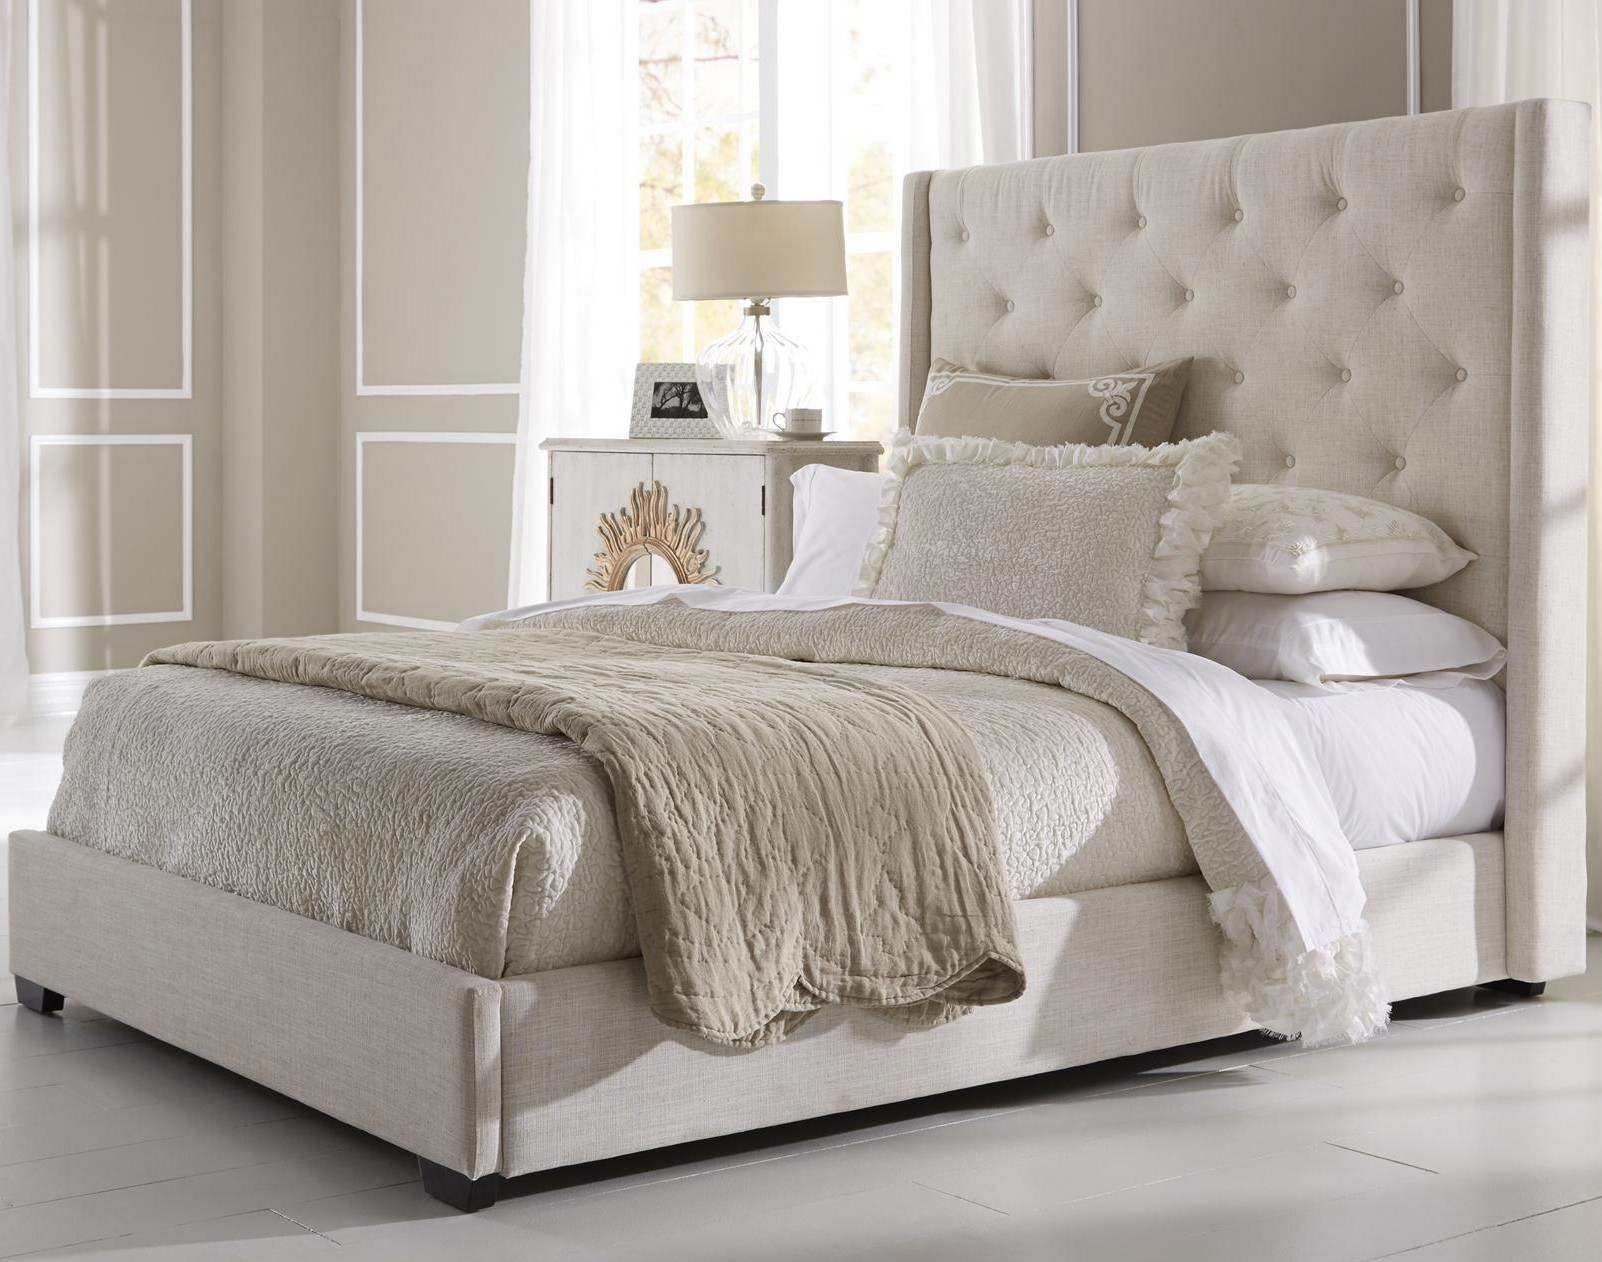 frames headboard bed for types beds anatomy a of and different